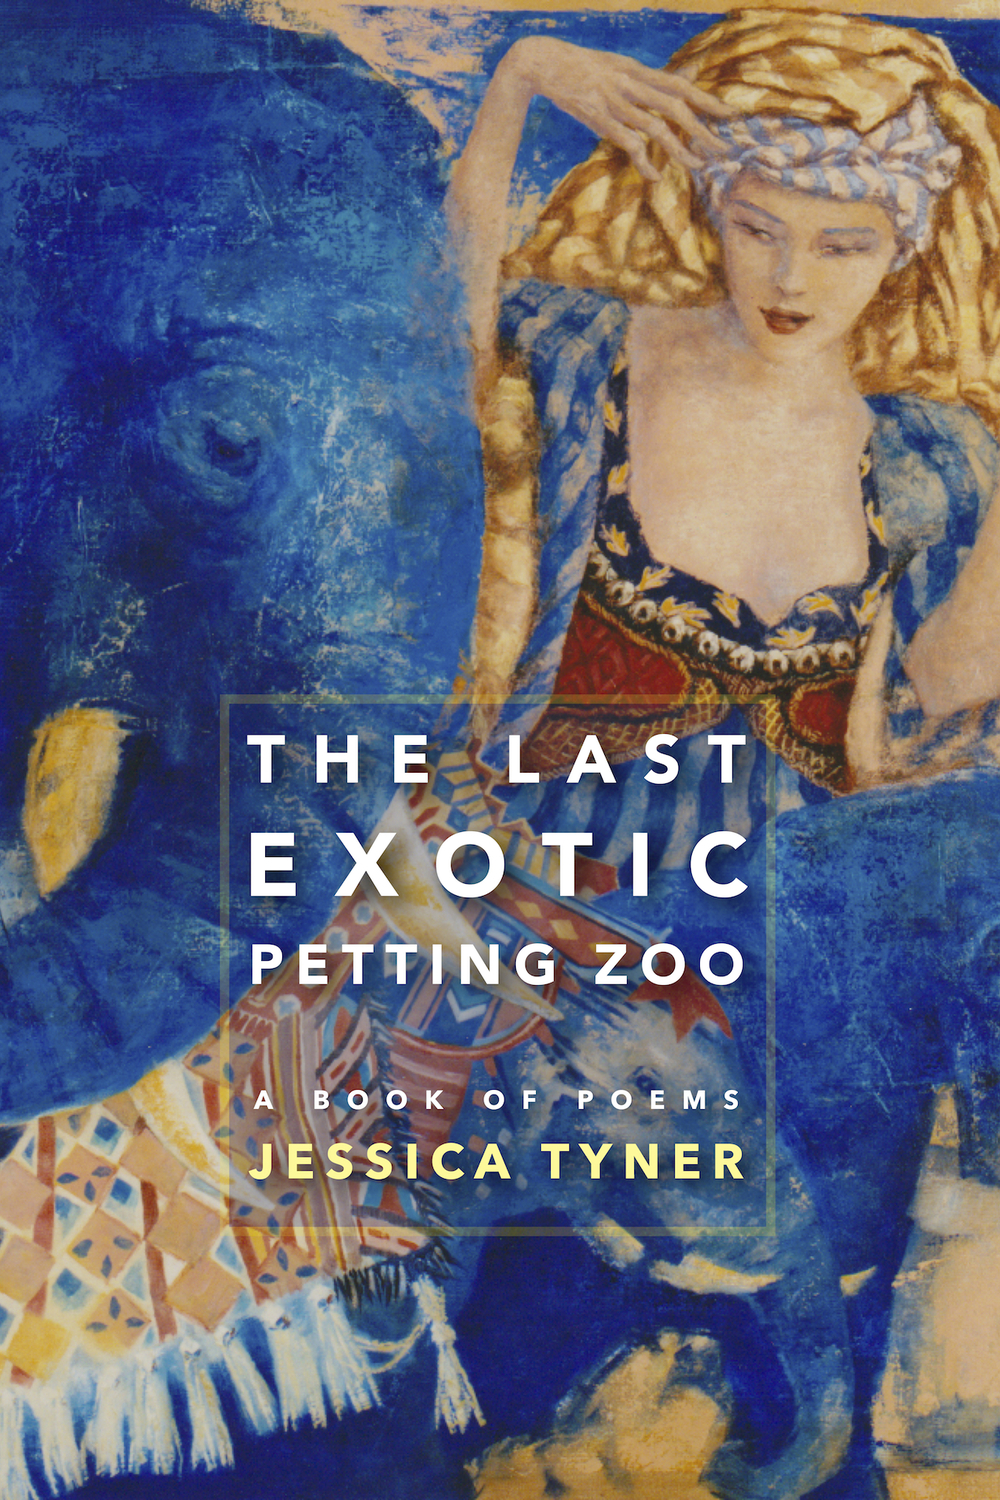 Ph.D In Creative Writing - How Jessica Tyner Became a Writer